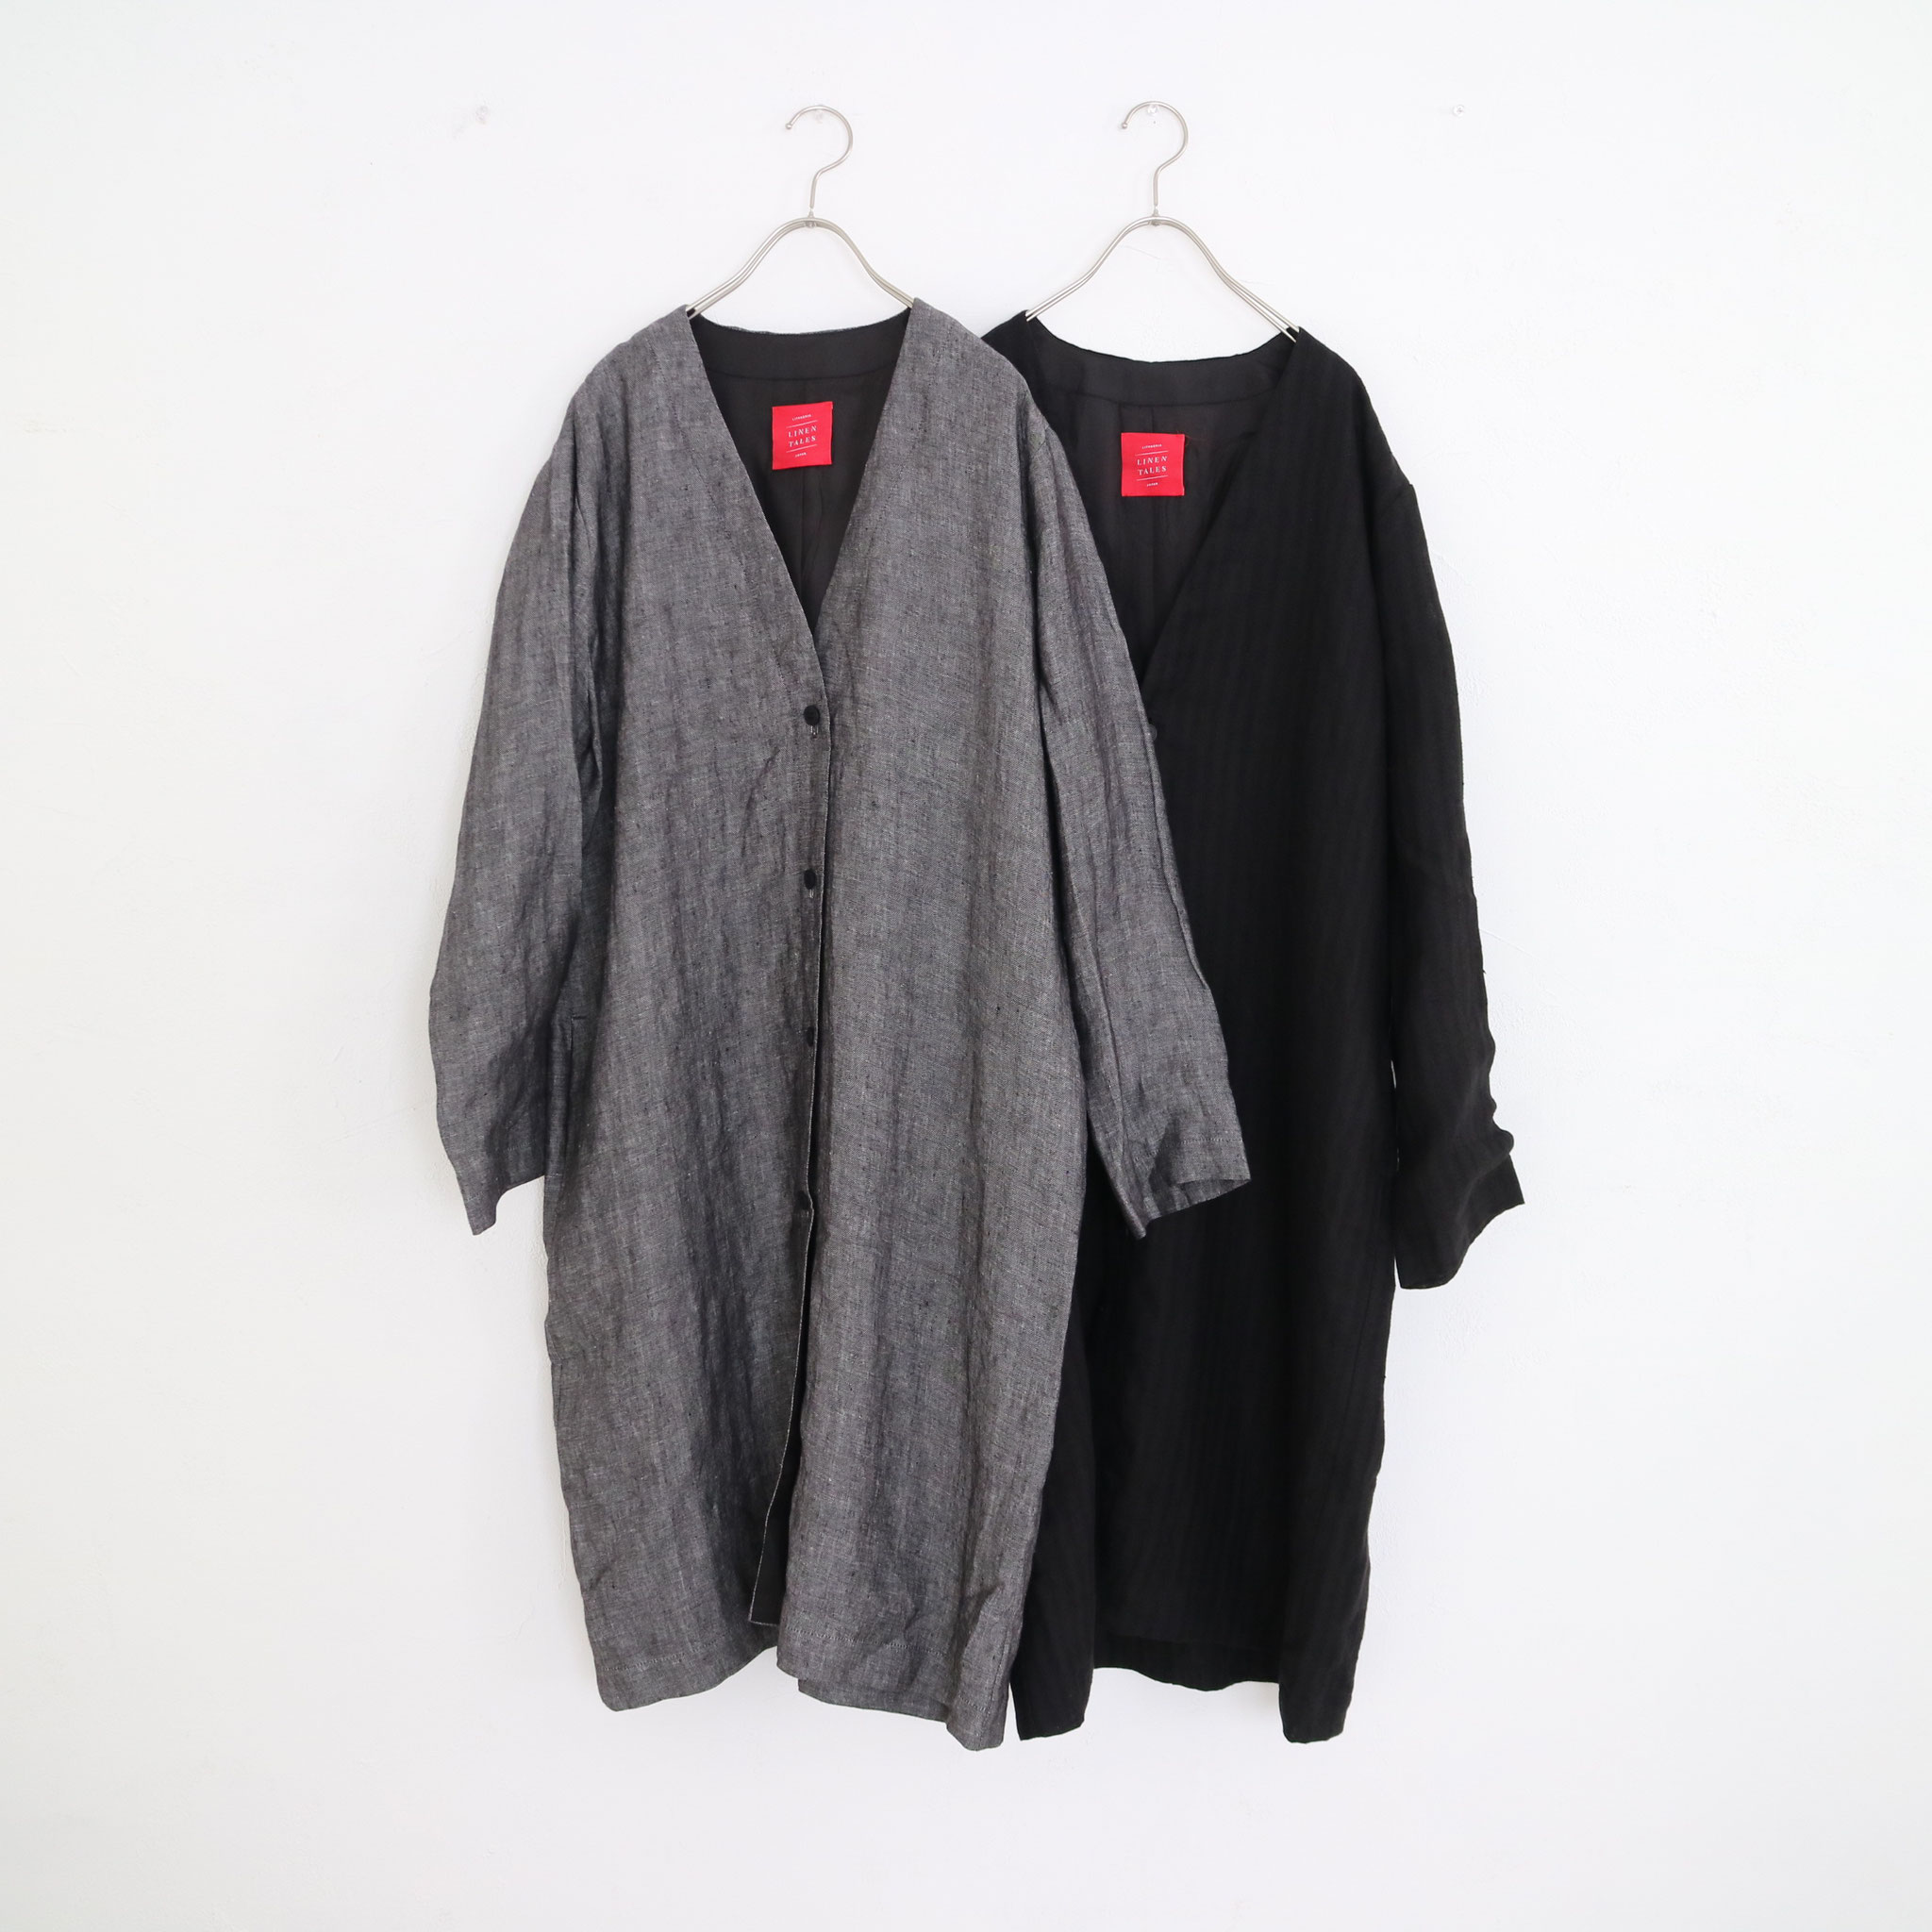 Herringbone BK Chambray→ Black